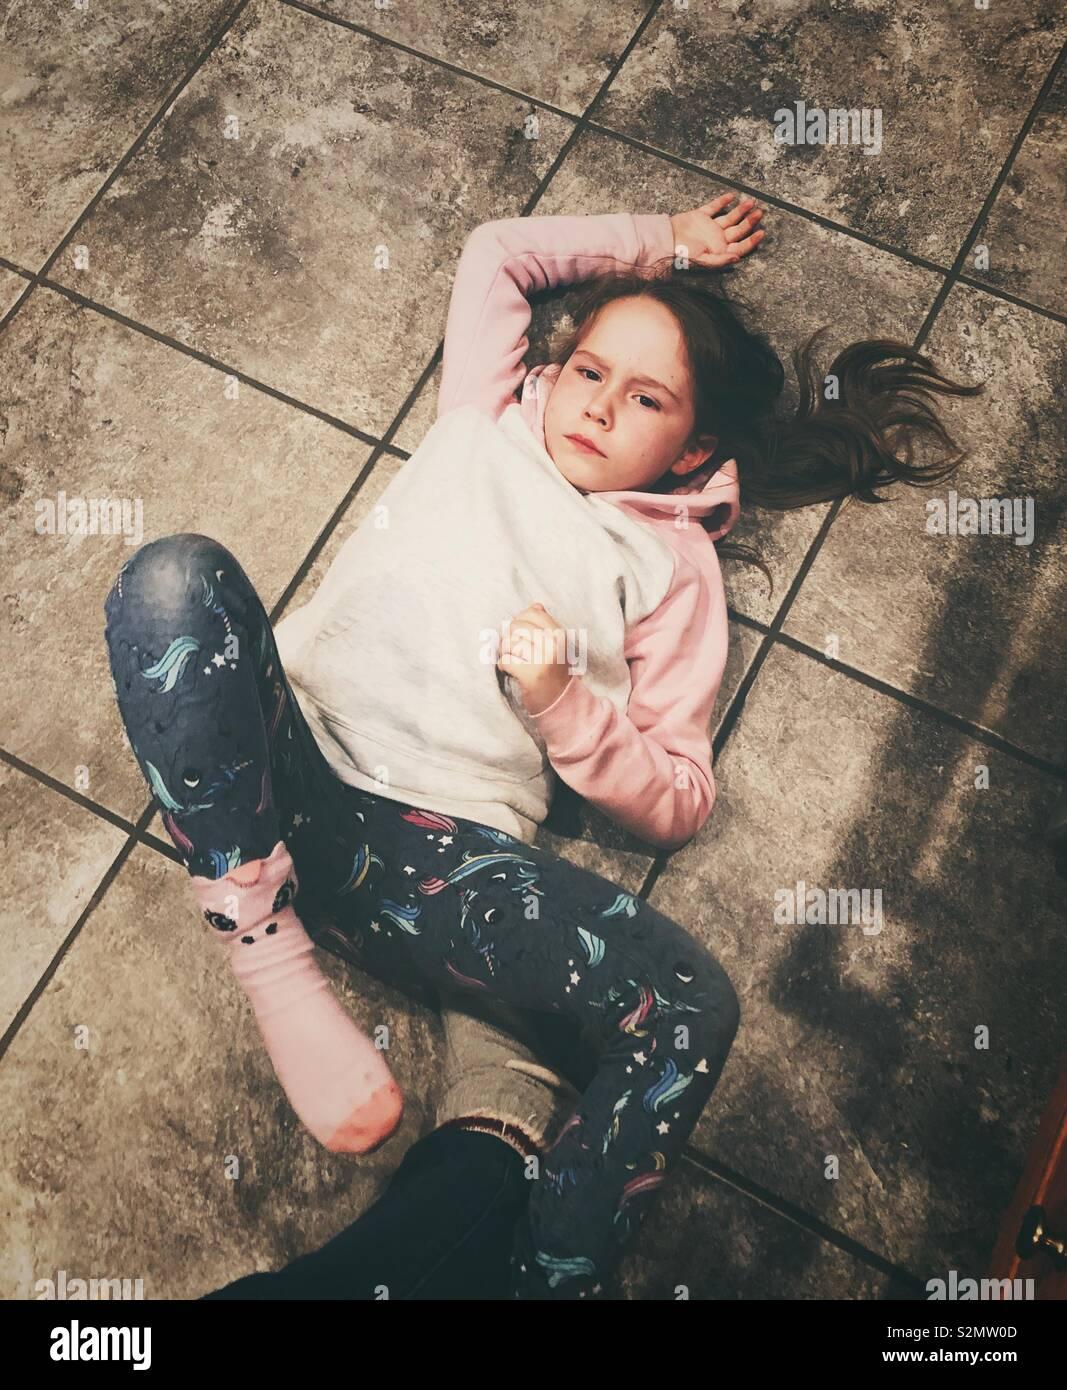 Angry young girl on the floor - Stock Image